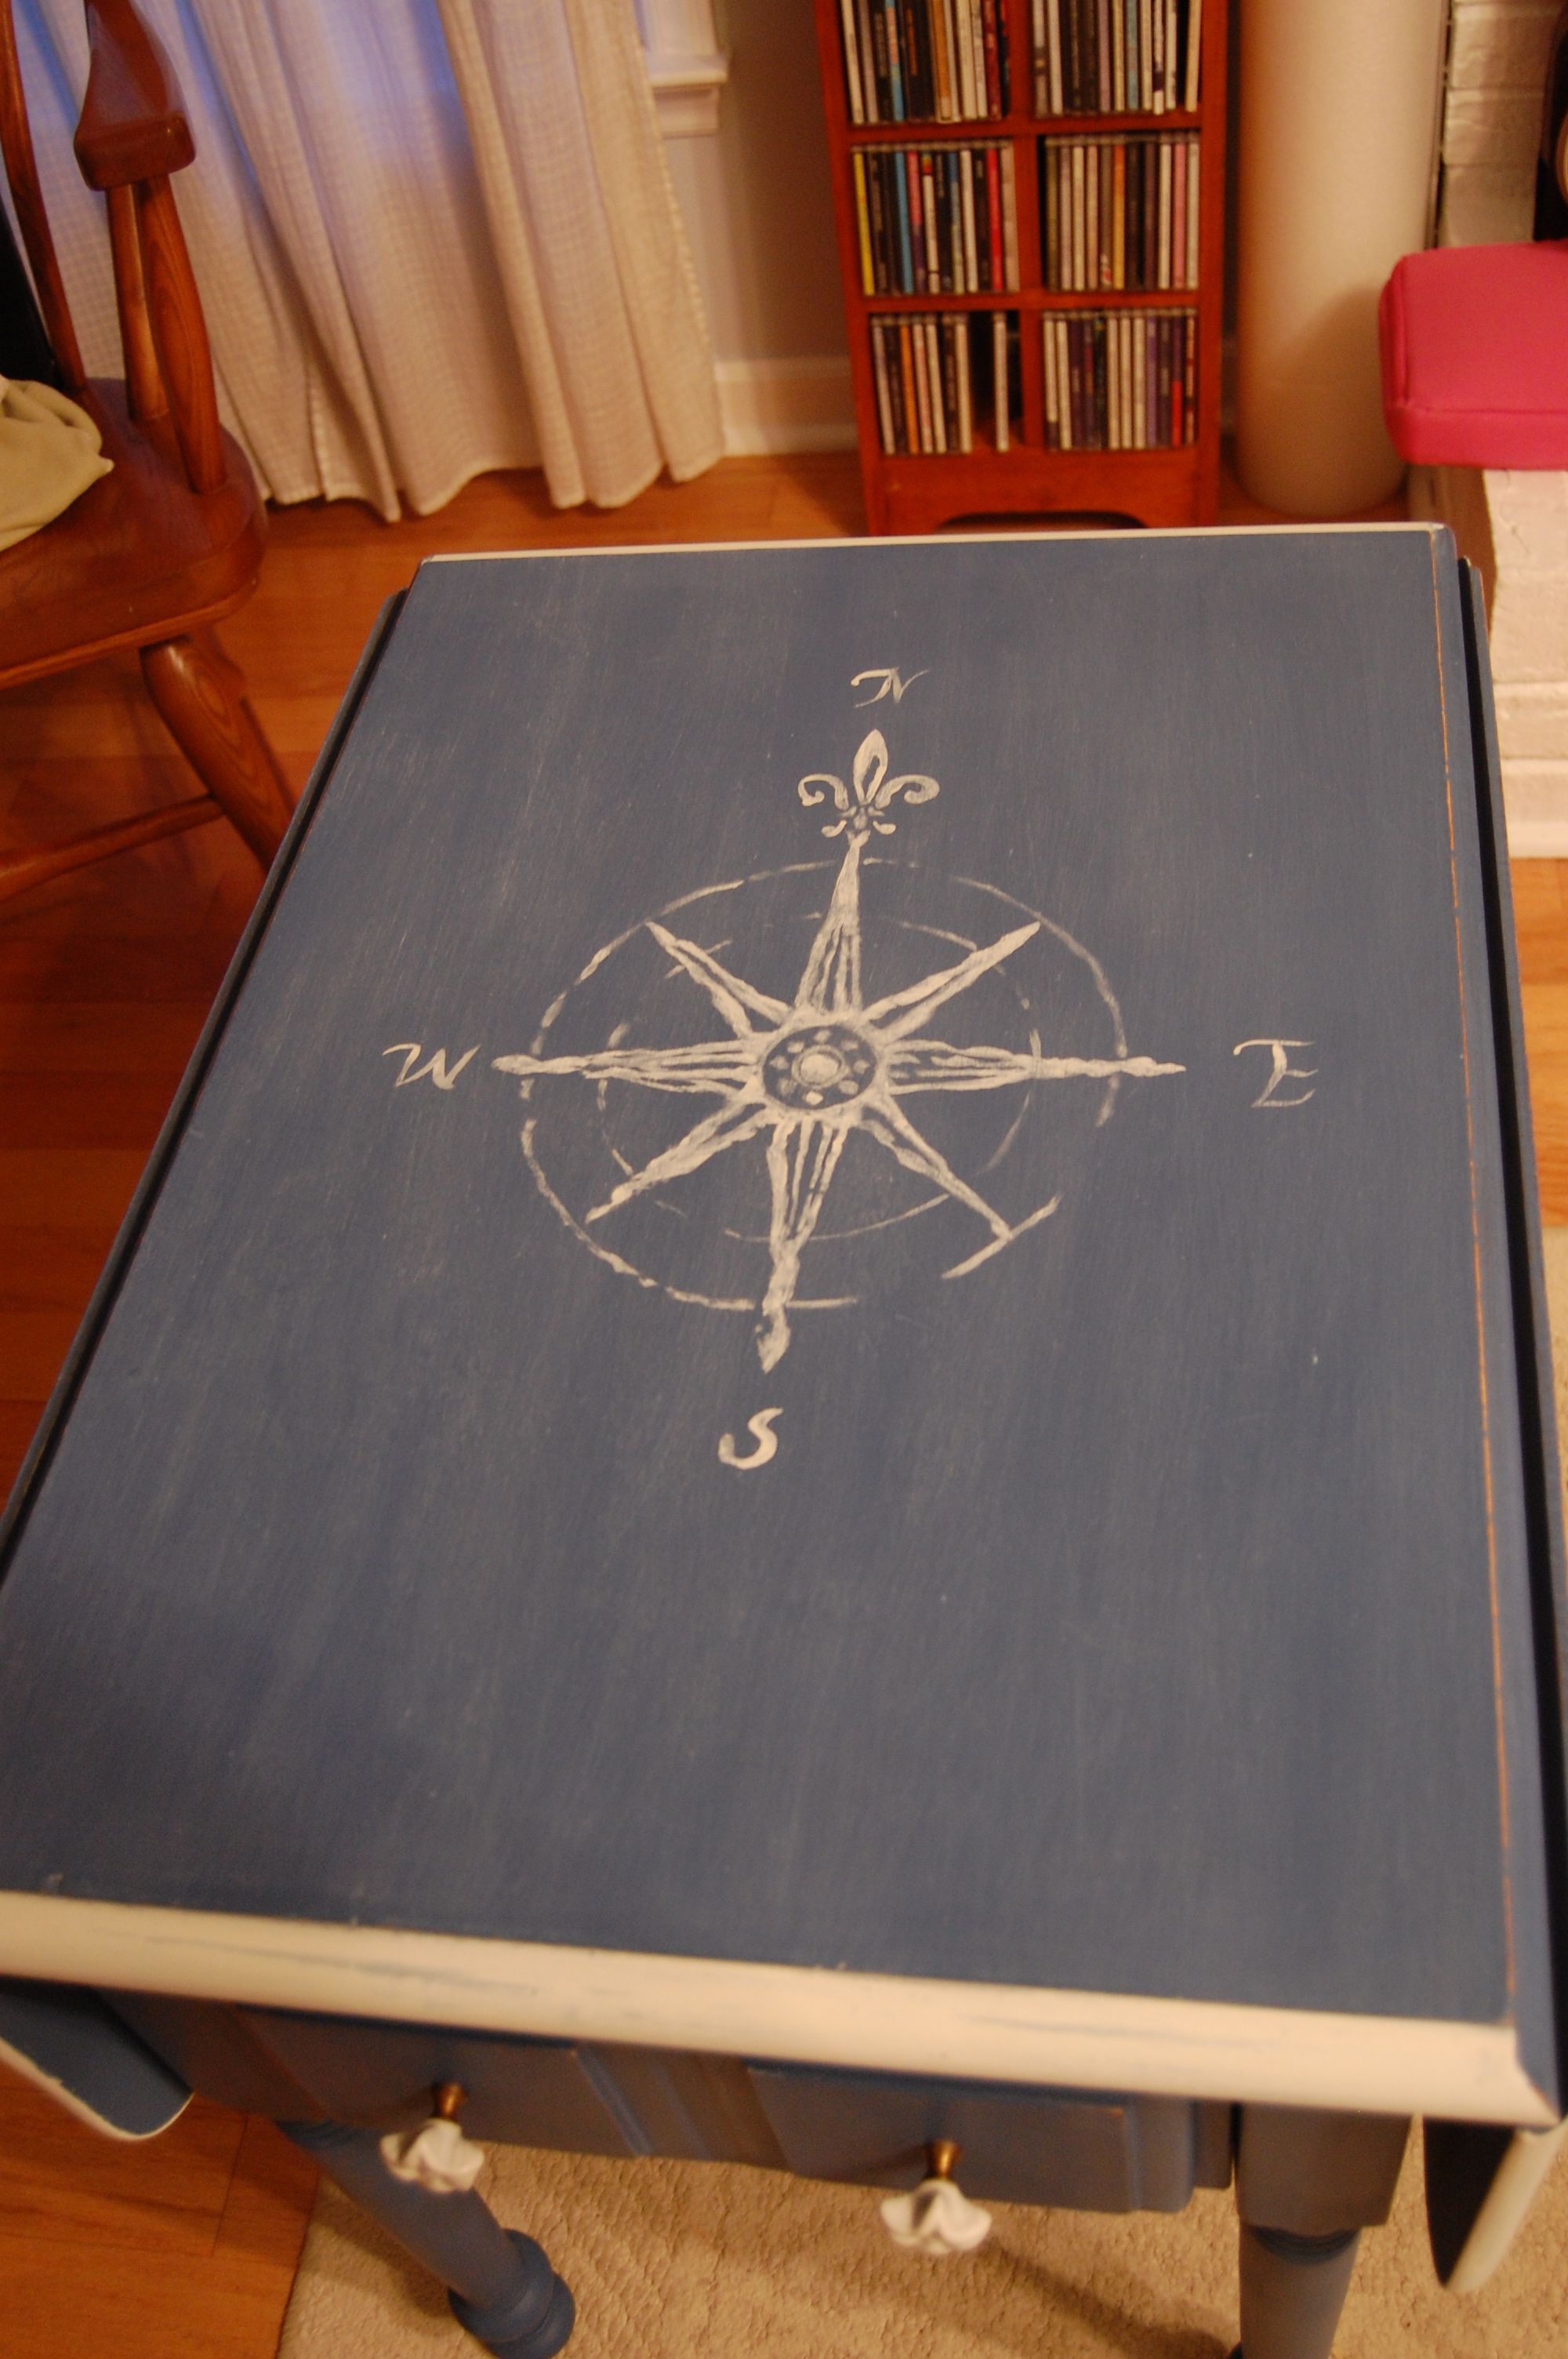 Hmmm, Maybe I Could Embroider A Compass Rose On A